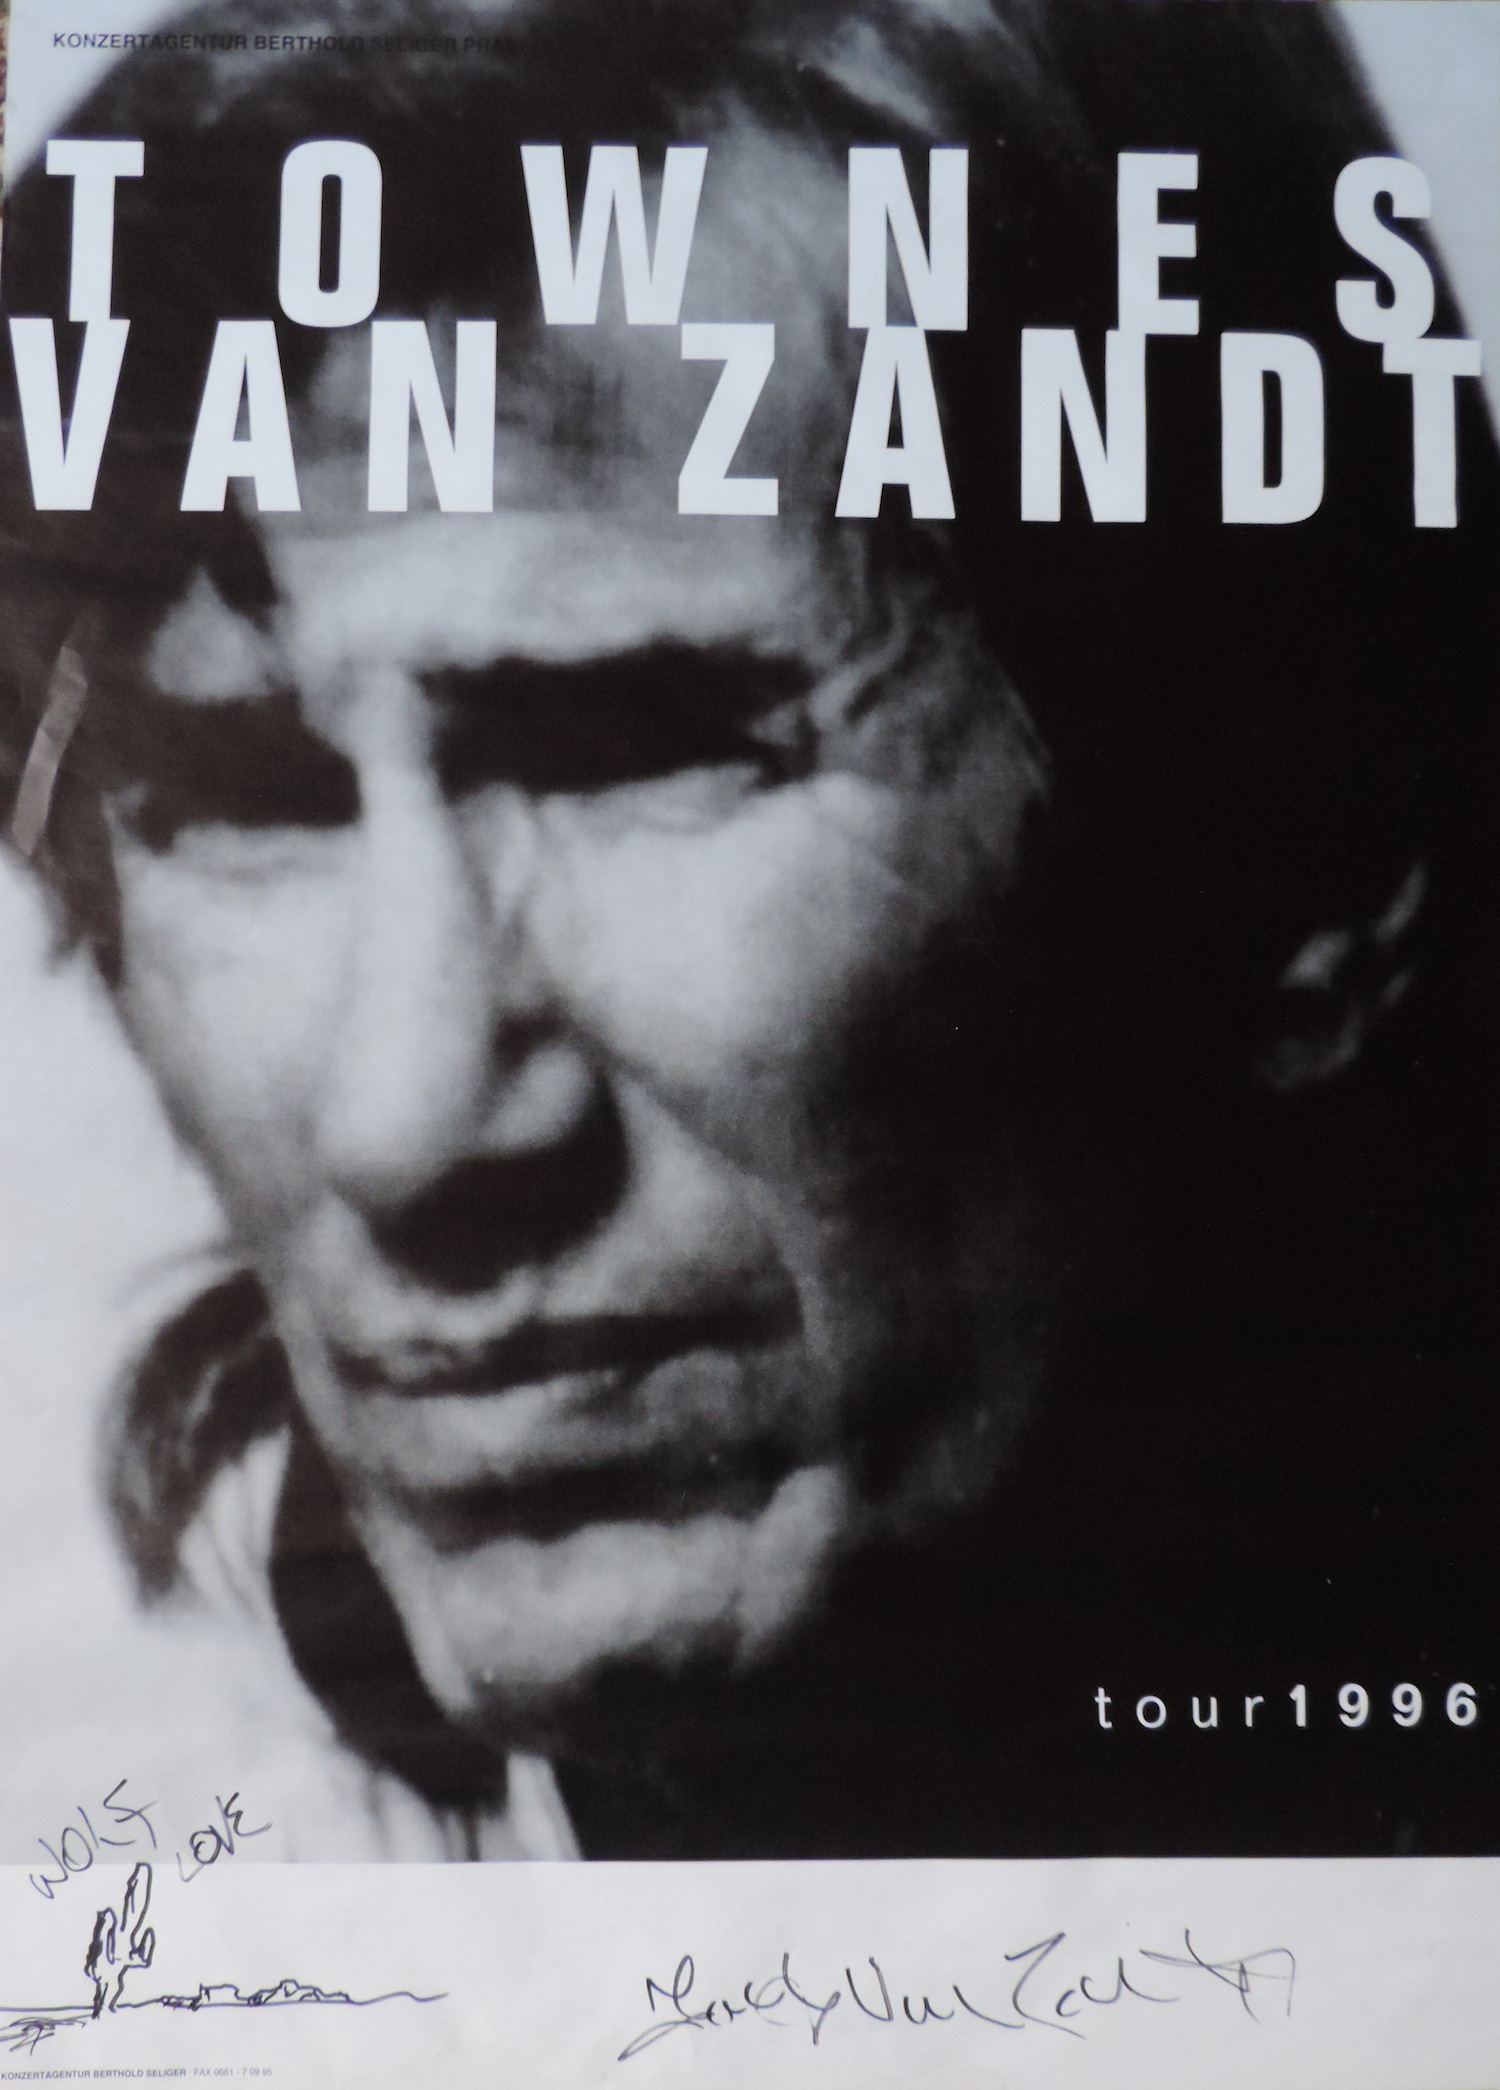 Poster from Townes Van Zandt's last tour on earth.